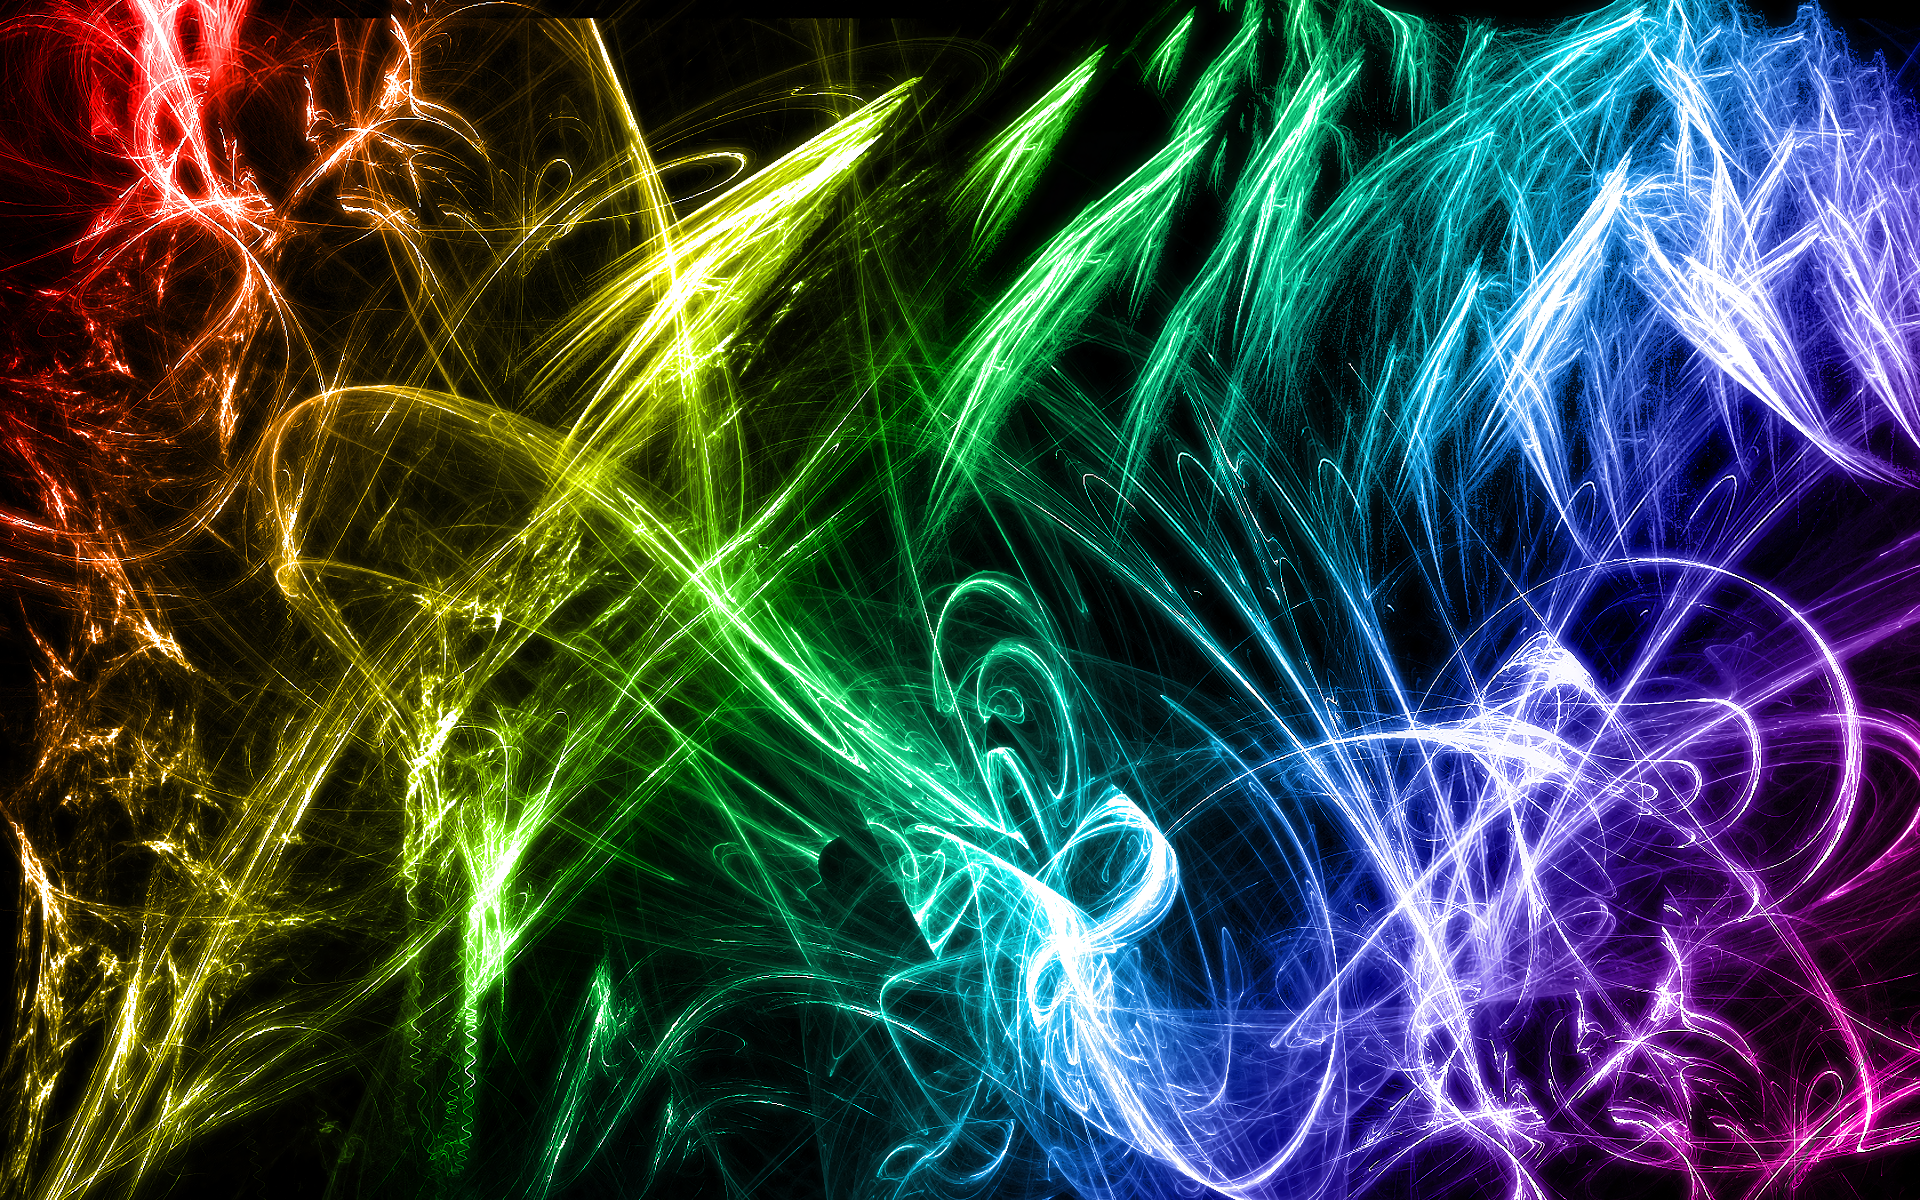 Abstract - Cool  Colors Abstract Colorful Wallpaper